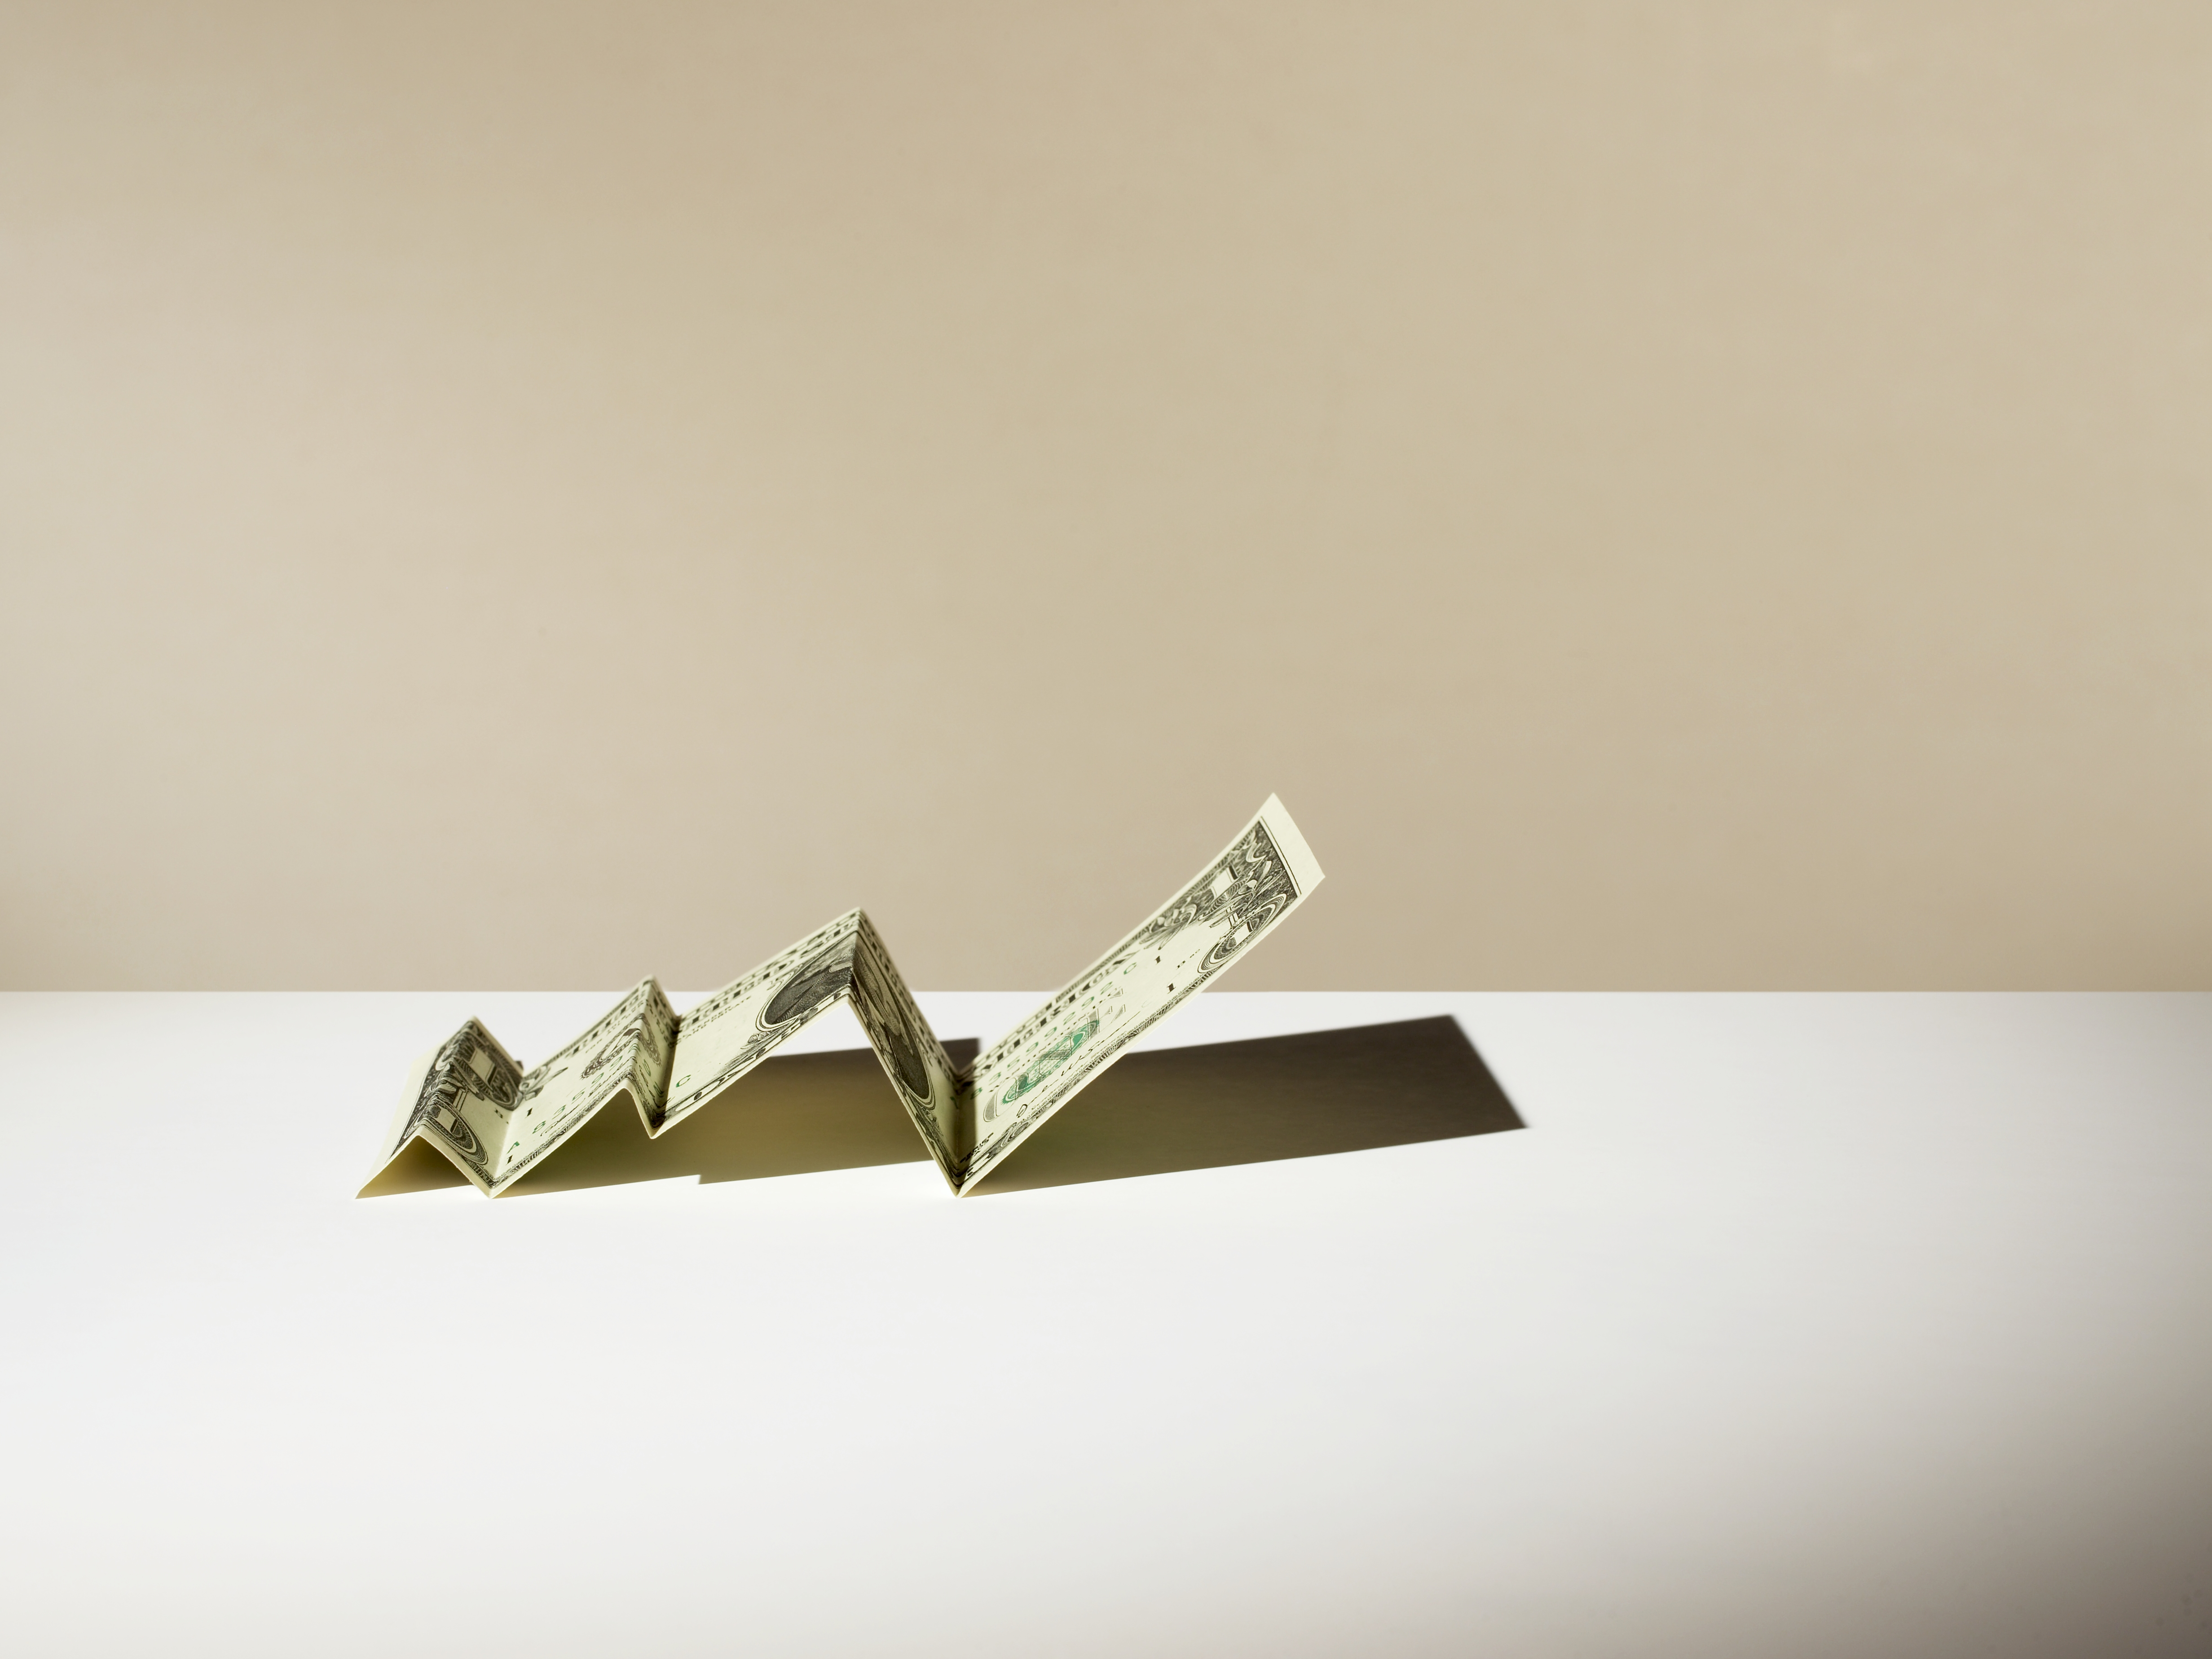 Us Dollar note folded to a line graph